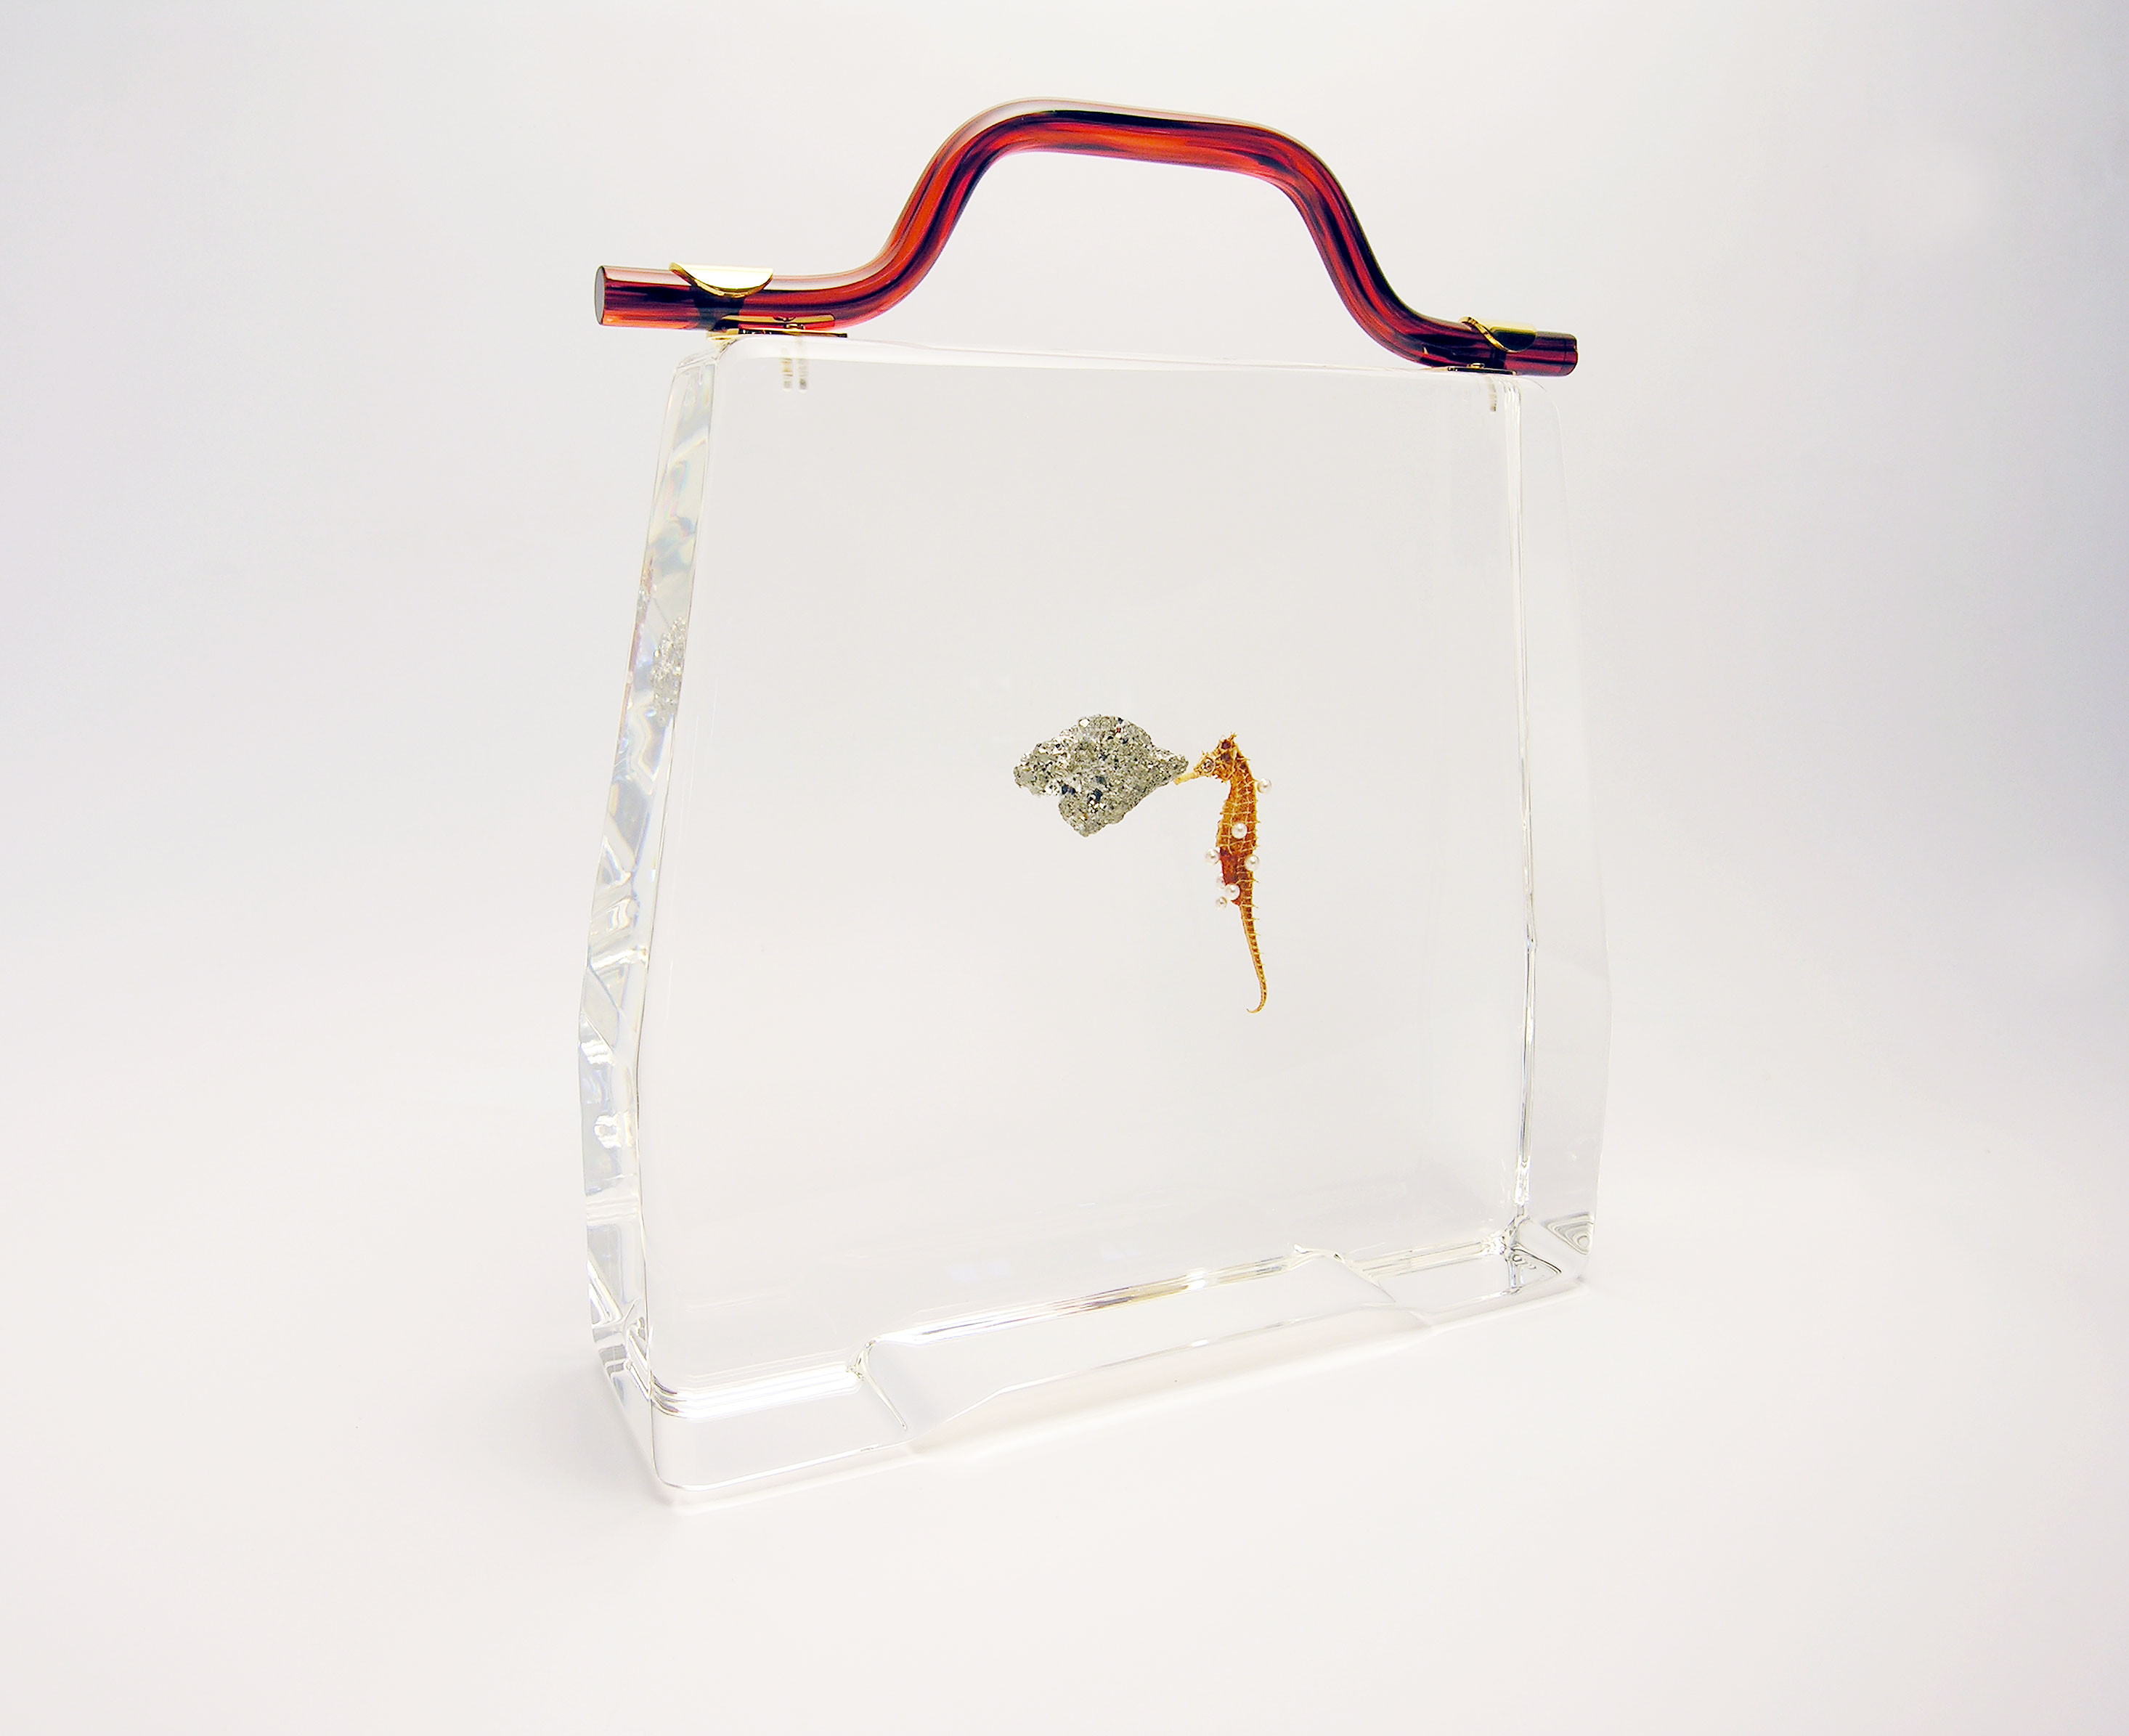 Seahorse Bag, 2017, sea horse, pearls, pyrite cast in acrylic, found handle 24K gold plated, 12 x 10.25 x 3.25 inches